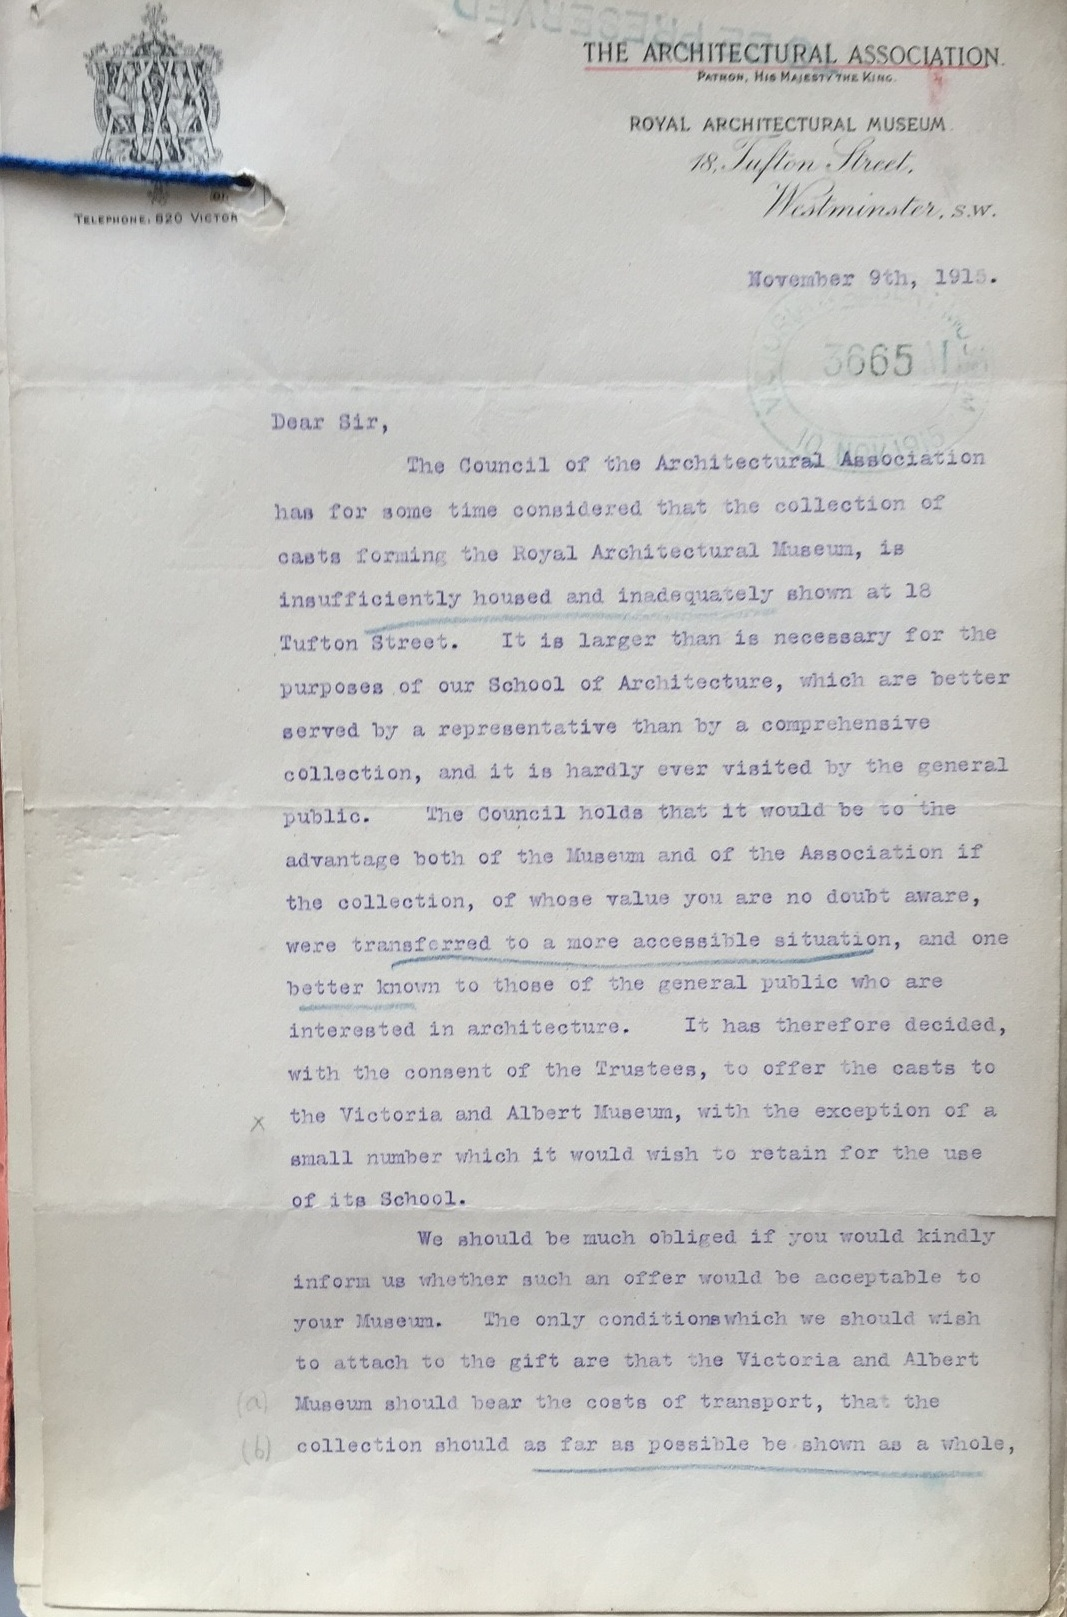 Letter from H. Austen Hall, President of the Architectural Association to Cecil Harcourt Smith, Director of the V&A, 9 November 1915 AAD no. MA/1/A772